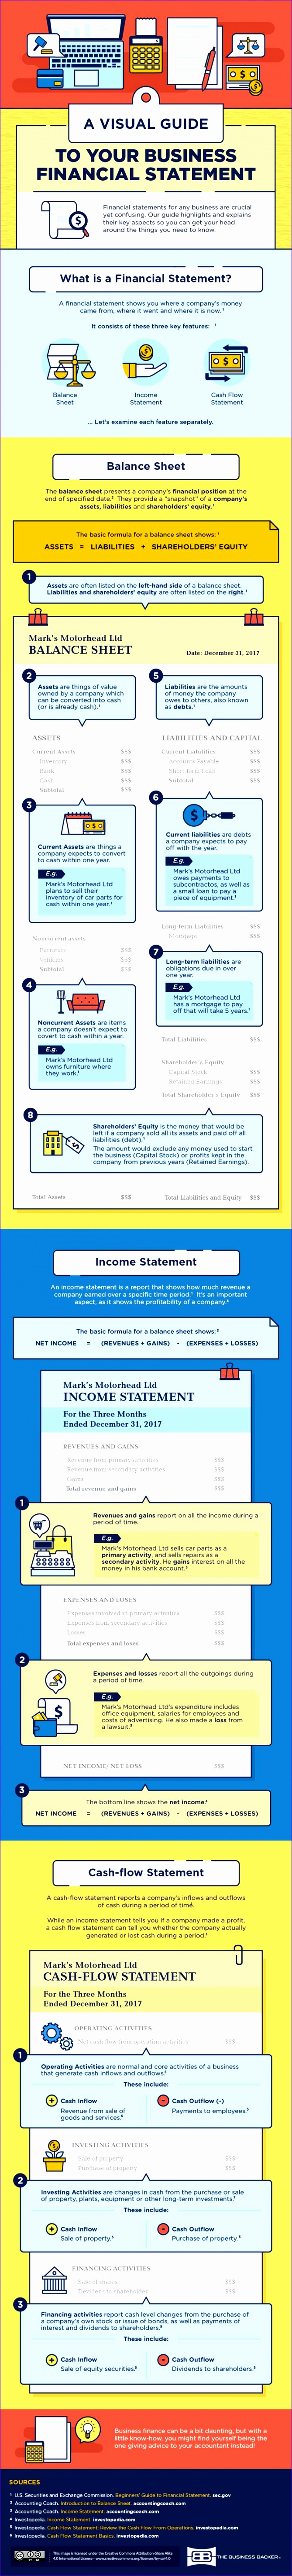 Statement Of Cash Flows Indirect Method Excel Template Wlqr3 Awesome Best 25 Cash Flow Statement Ideas On Pinterest